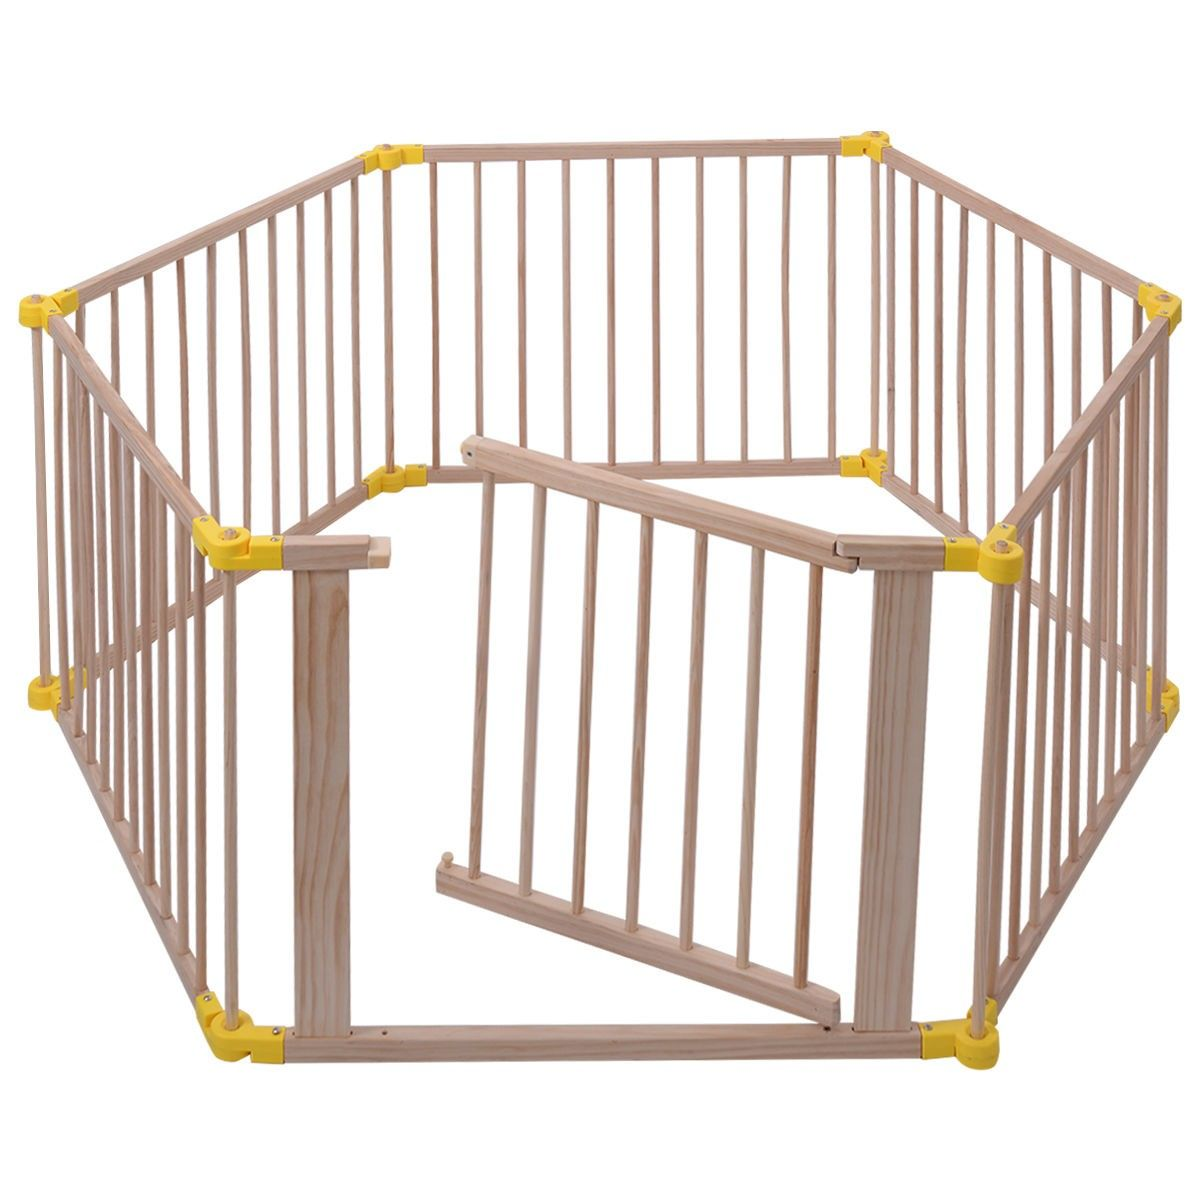 Baby Playpen 6 Panel Foldable Wooden Frame Kids Safety Play Fence In/Outdoor    Play